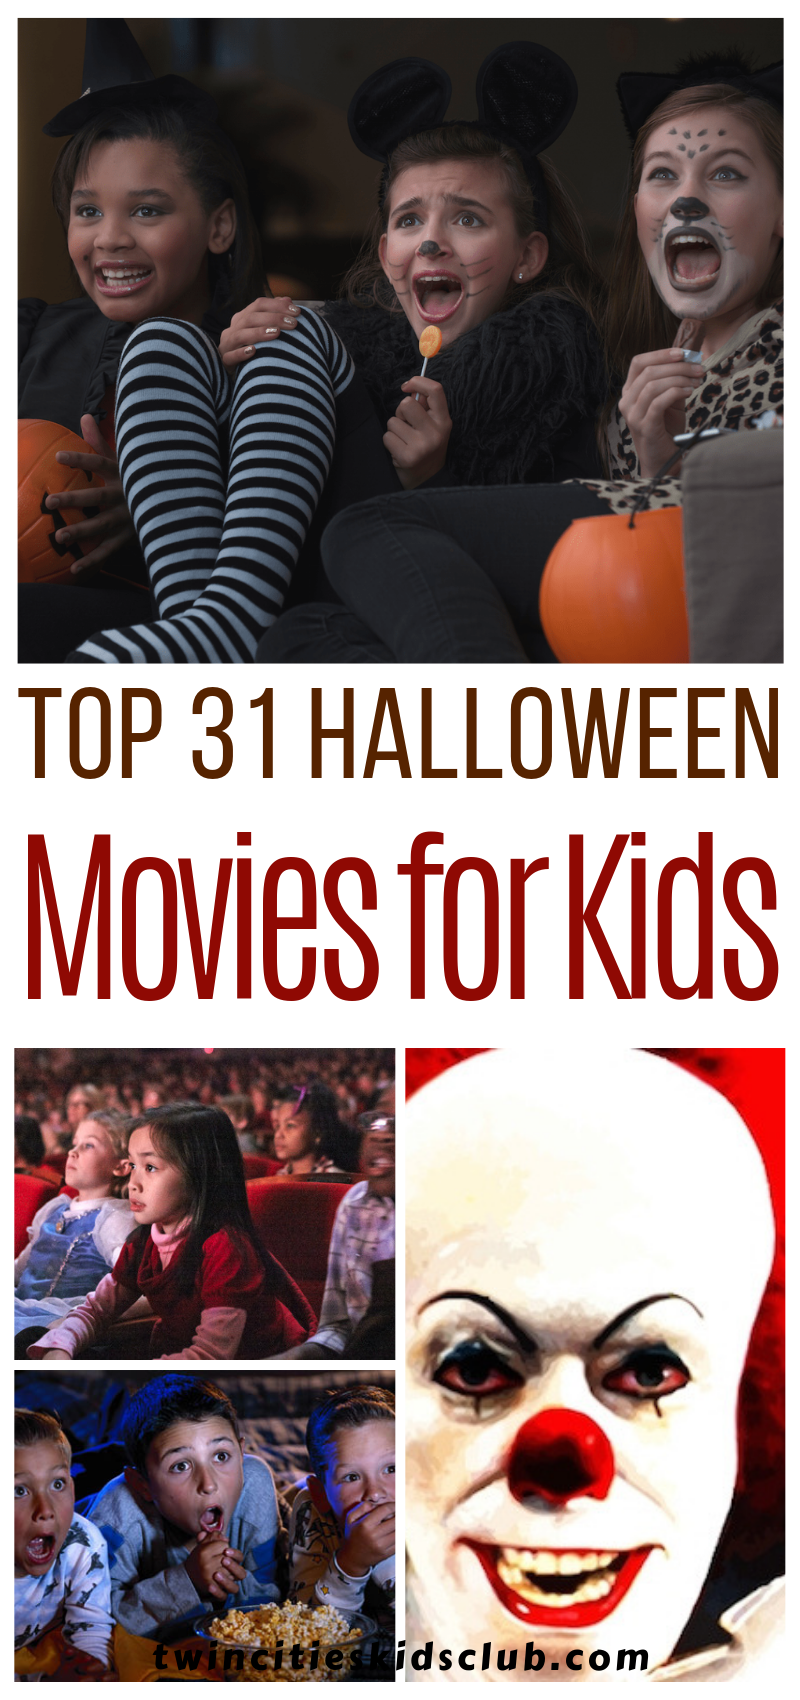 Top 31 Halloween Movies for Kids (2017) Kid movies